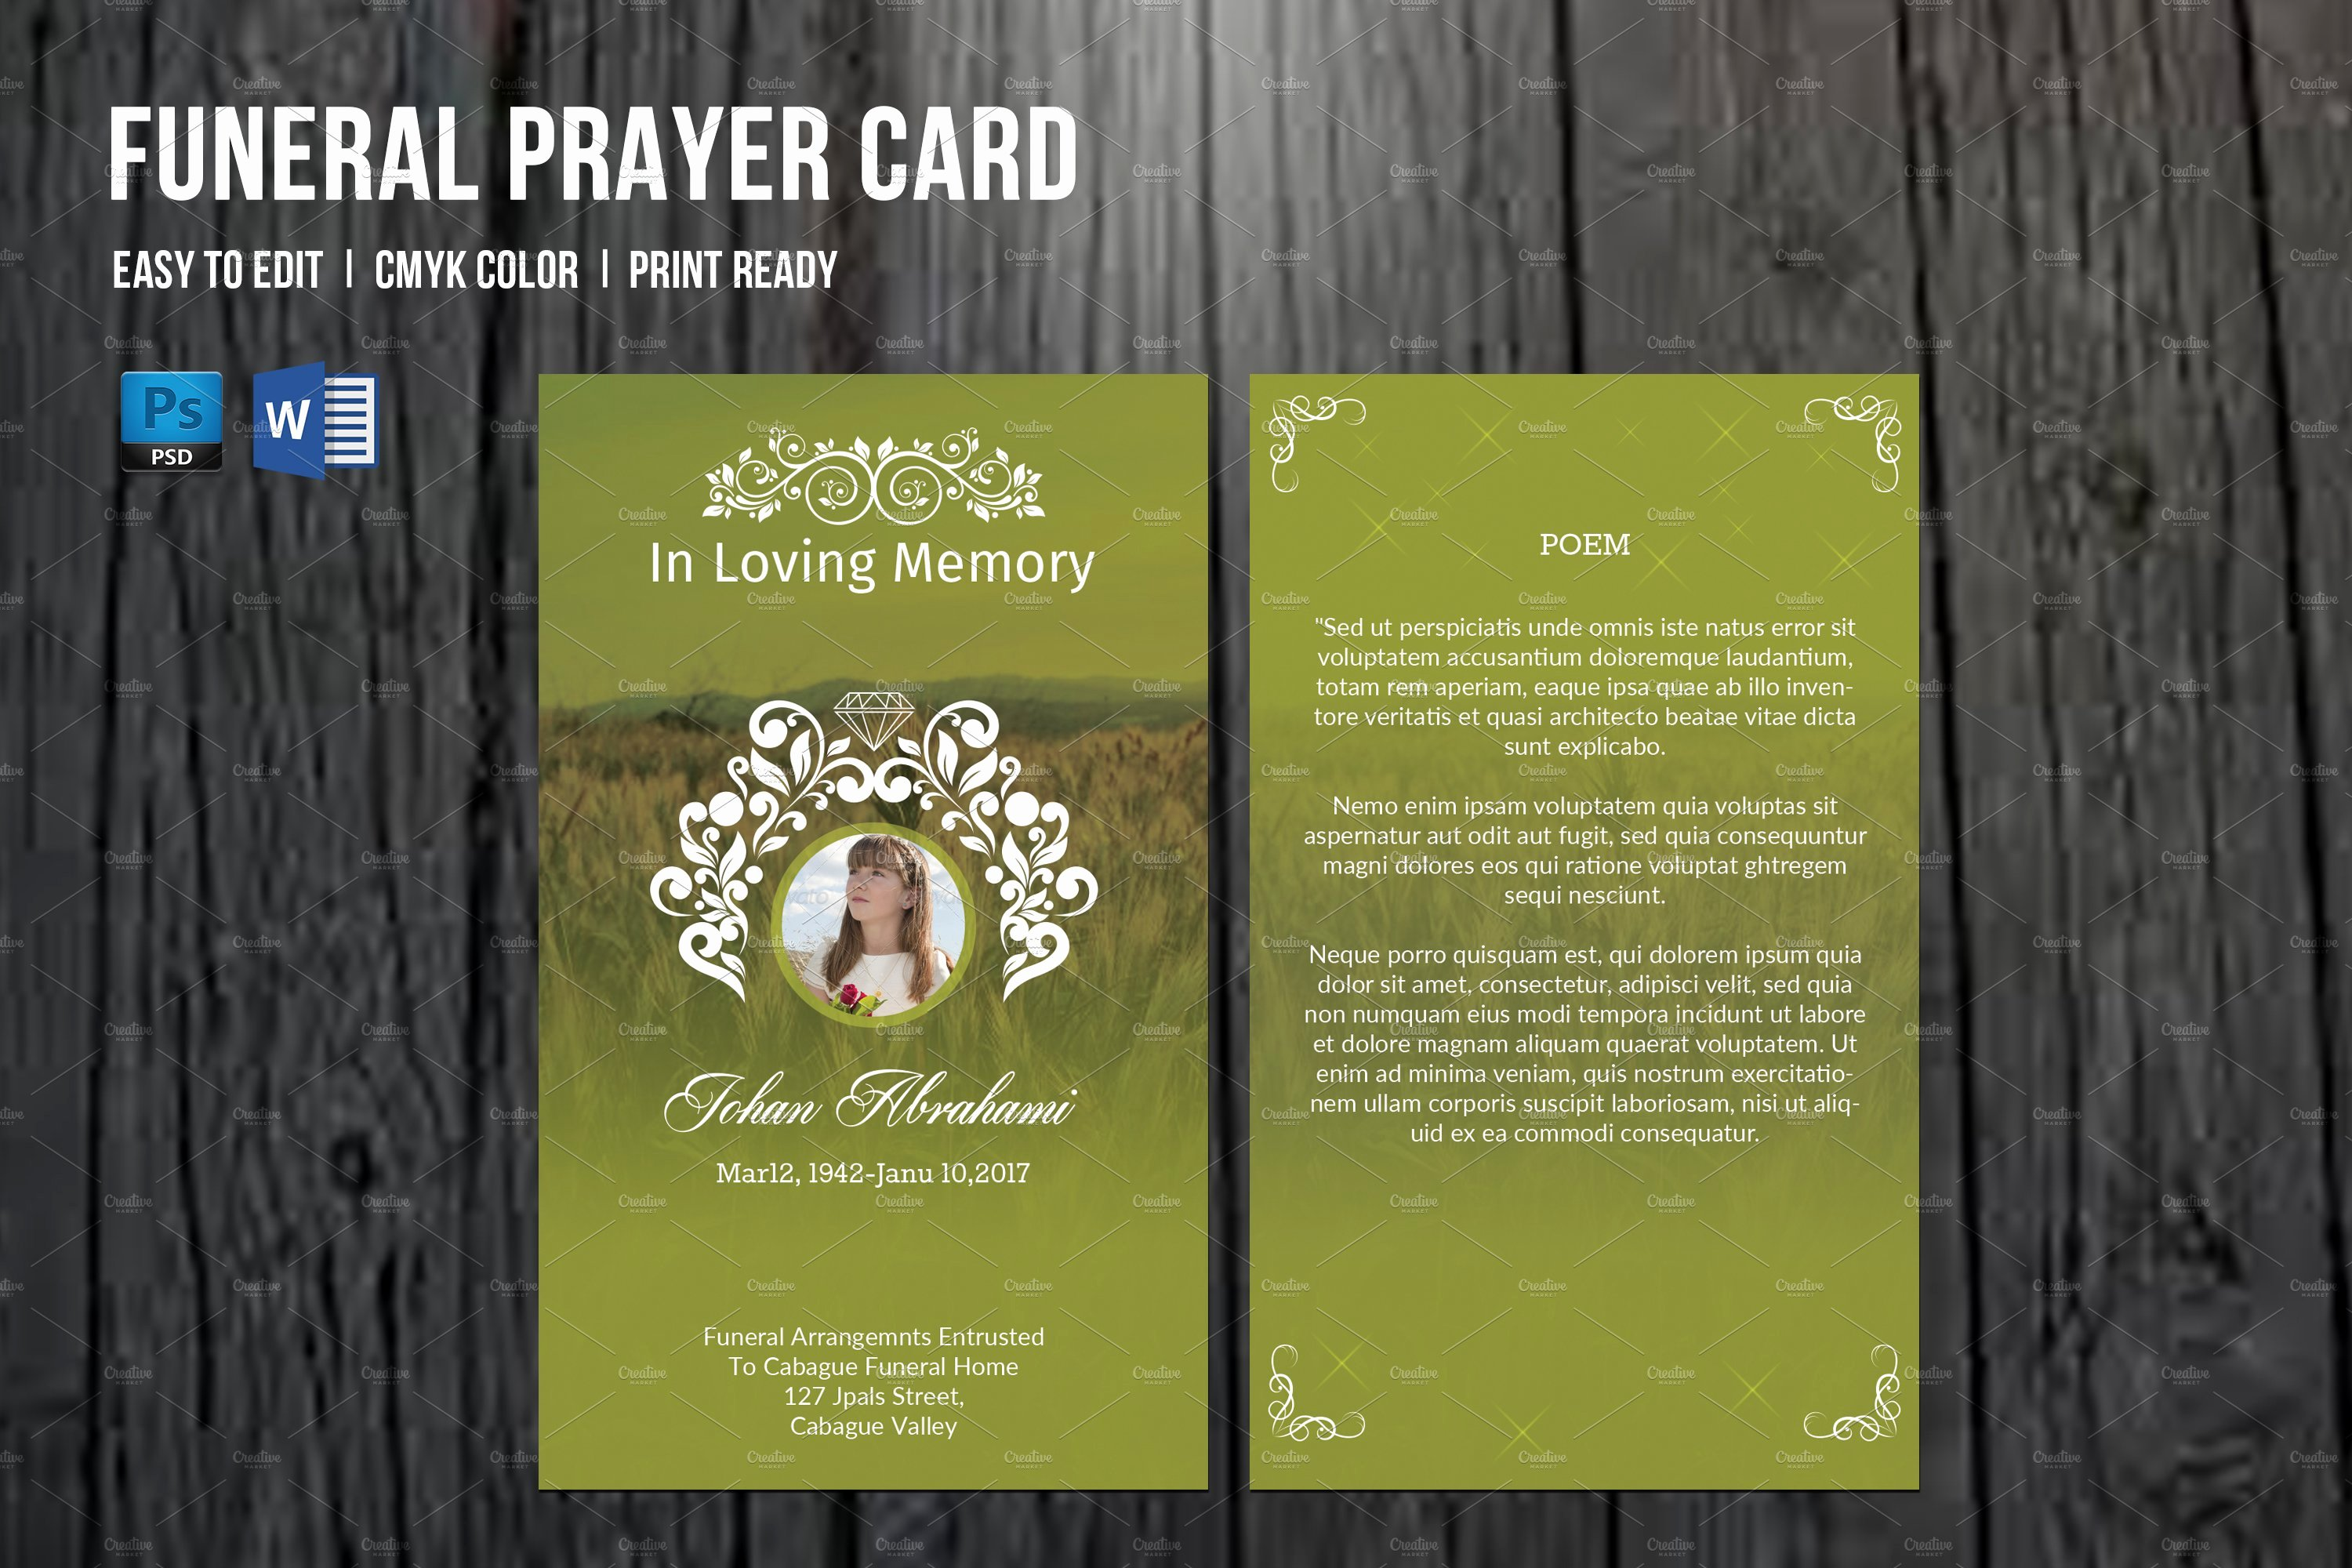 Funeral Prayer Card Template Free Elegant Funeral Prayer Card Template V660 Card Templates